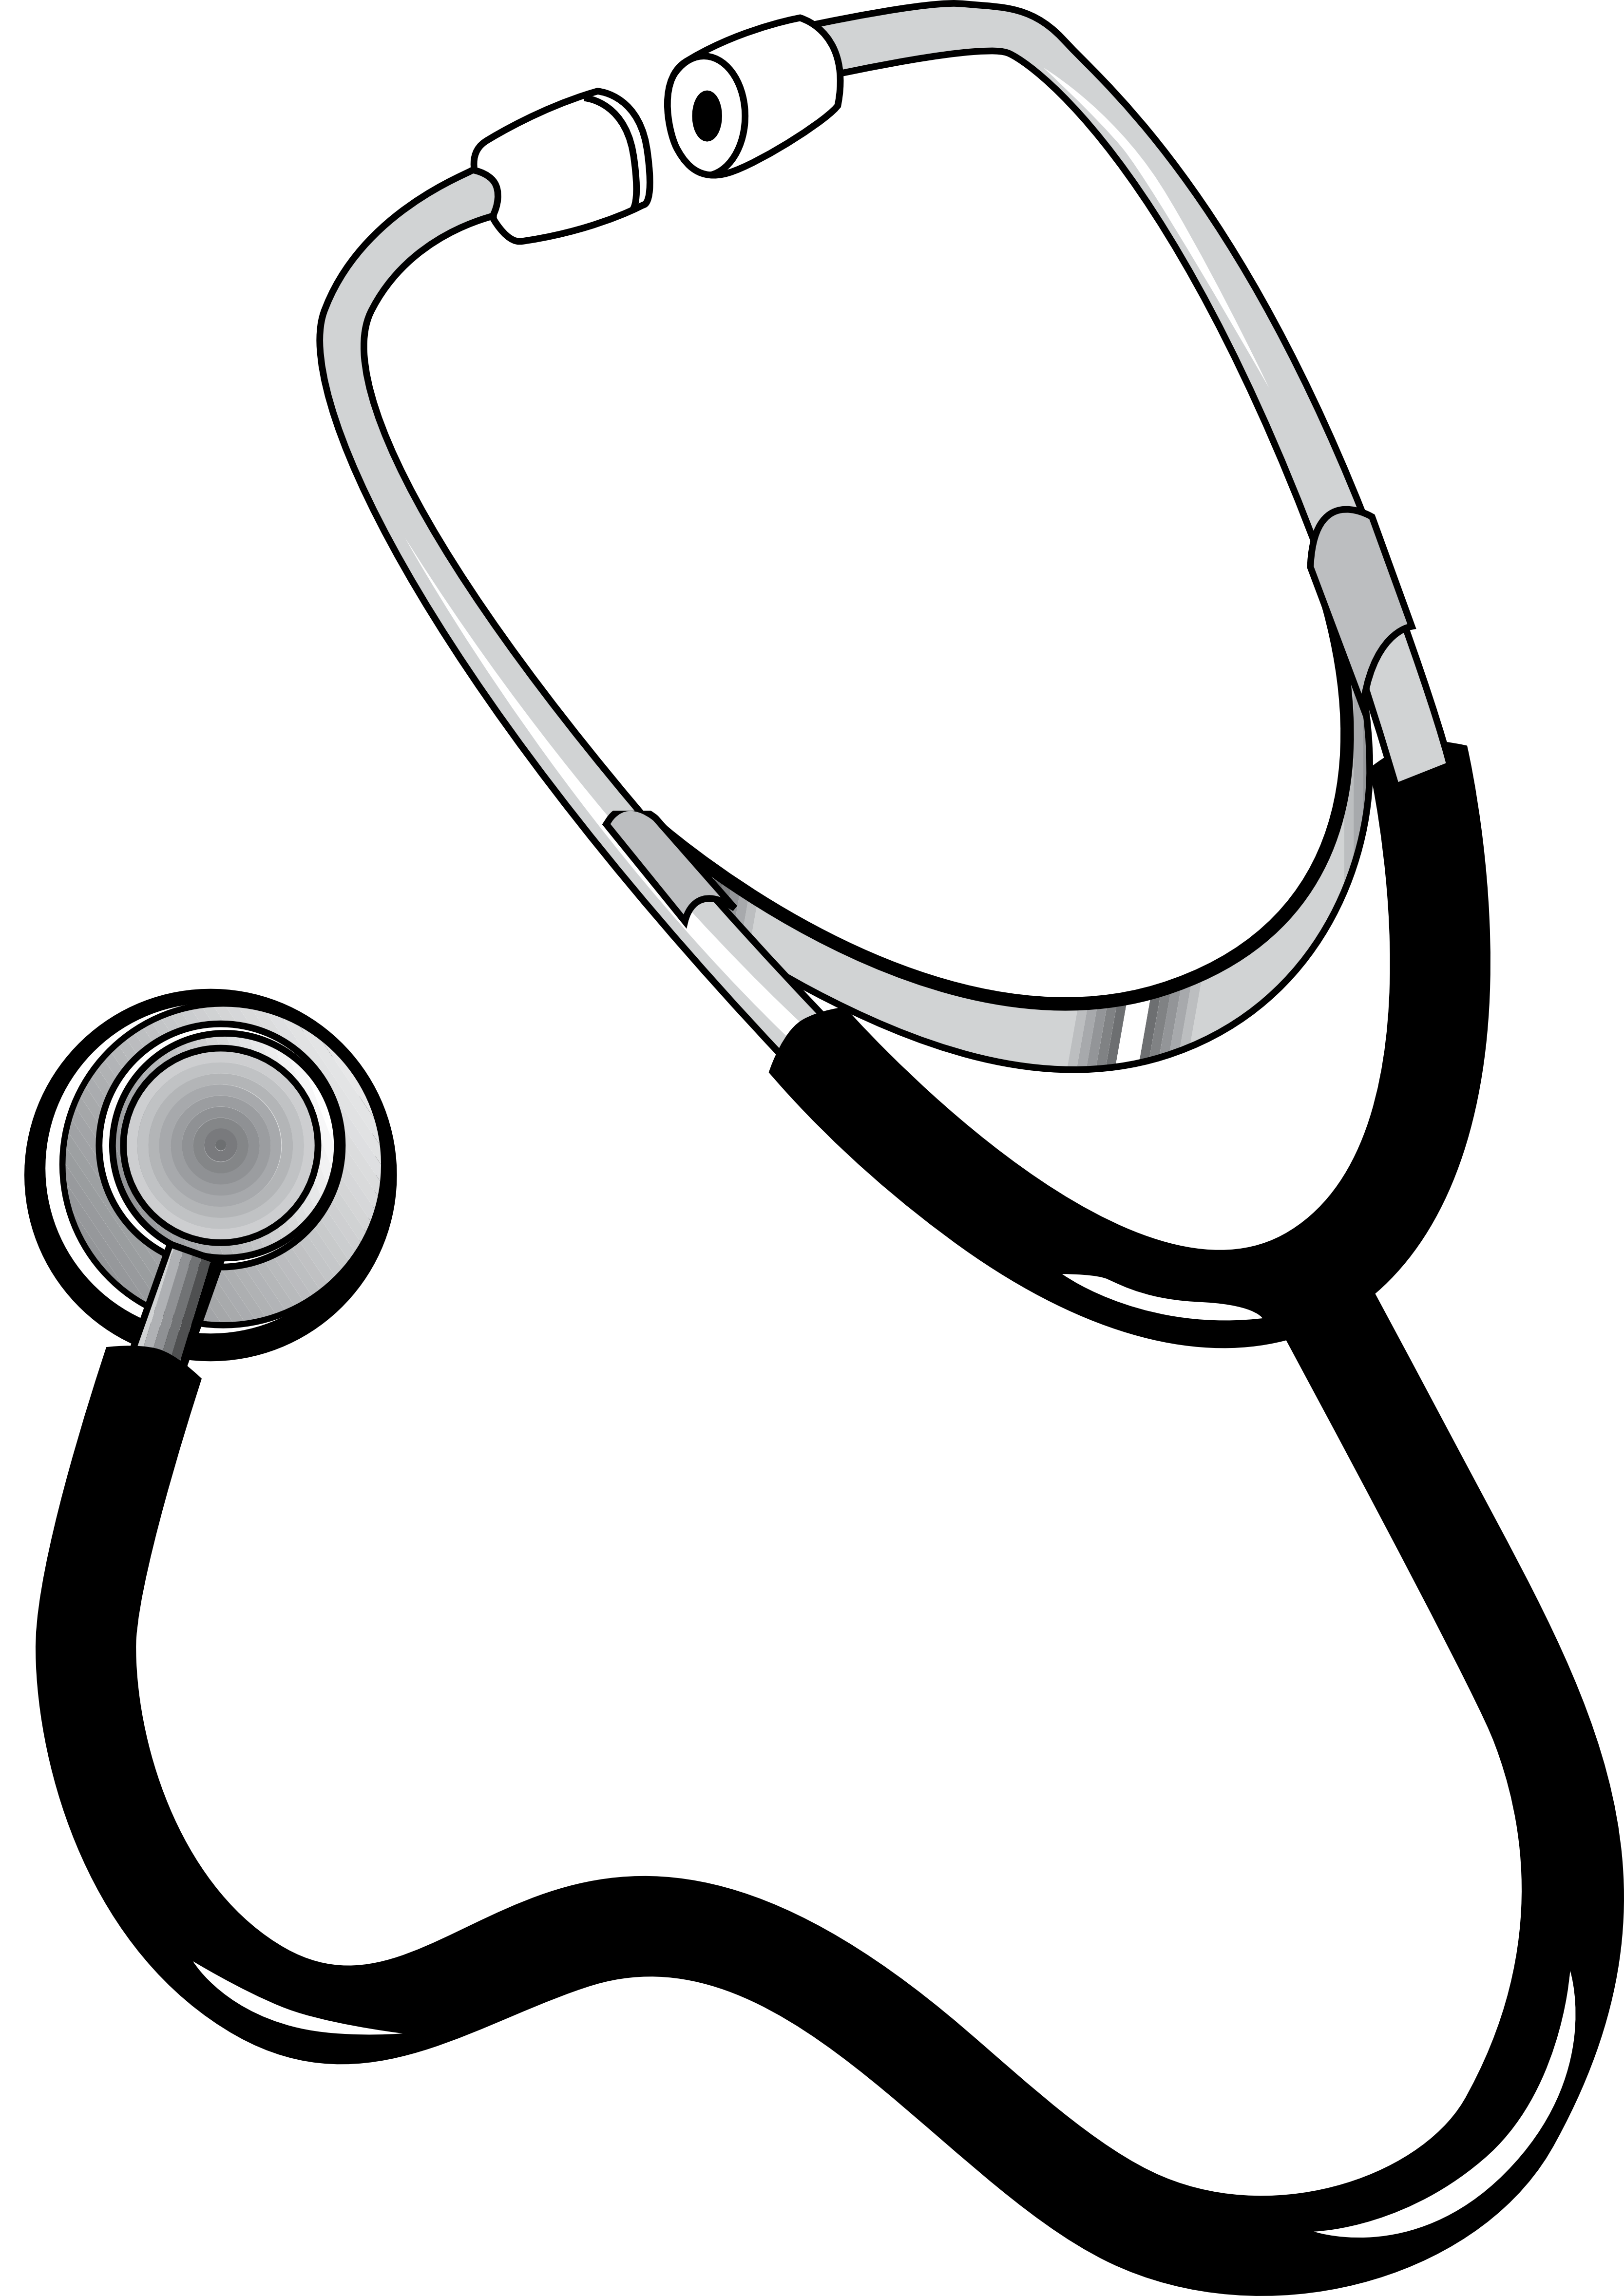 stethoscope clipart clipart panda free clipart images rh clipartpanda com stethoscope clip art monogram free clipart stethoscope images